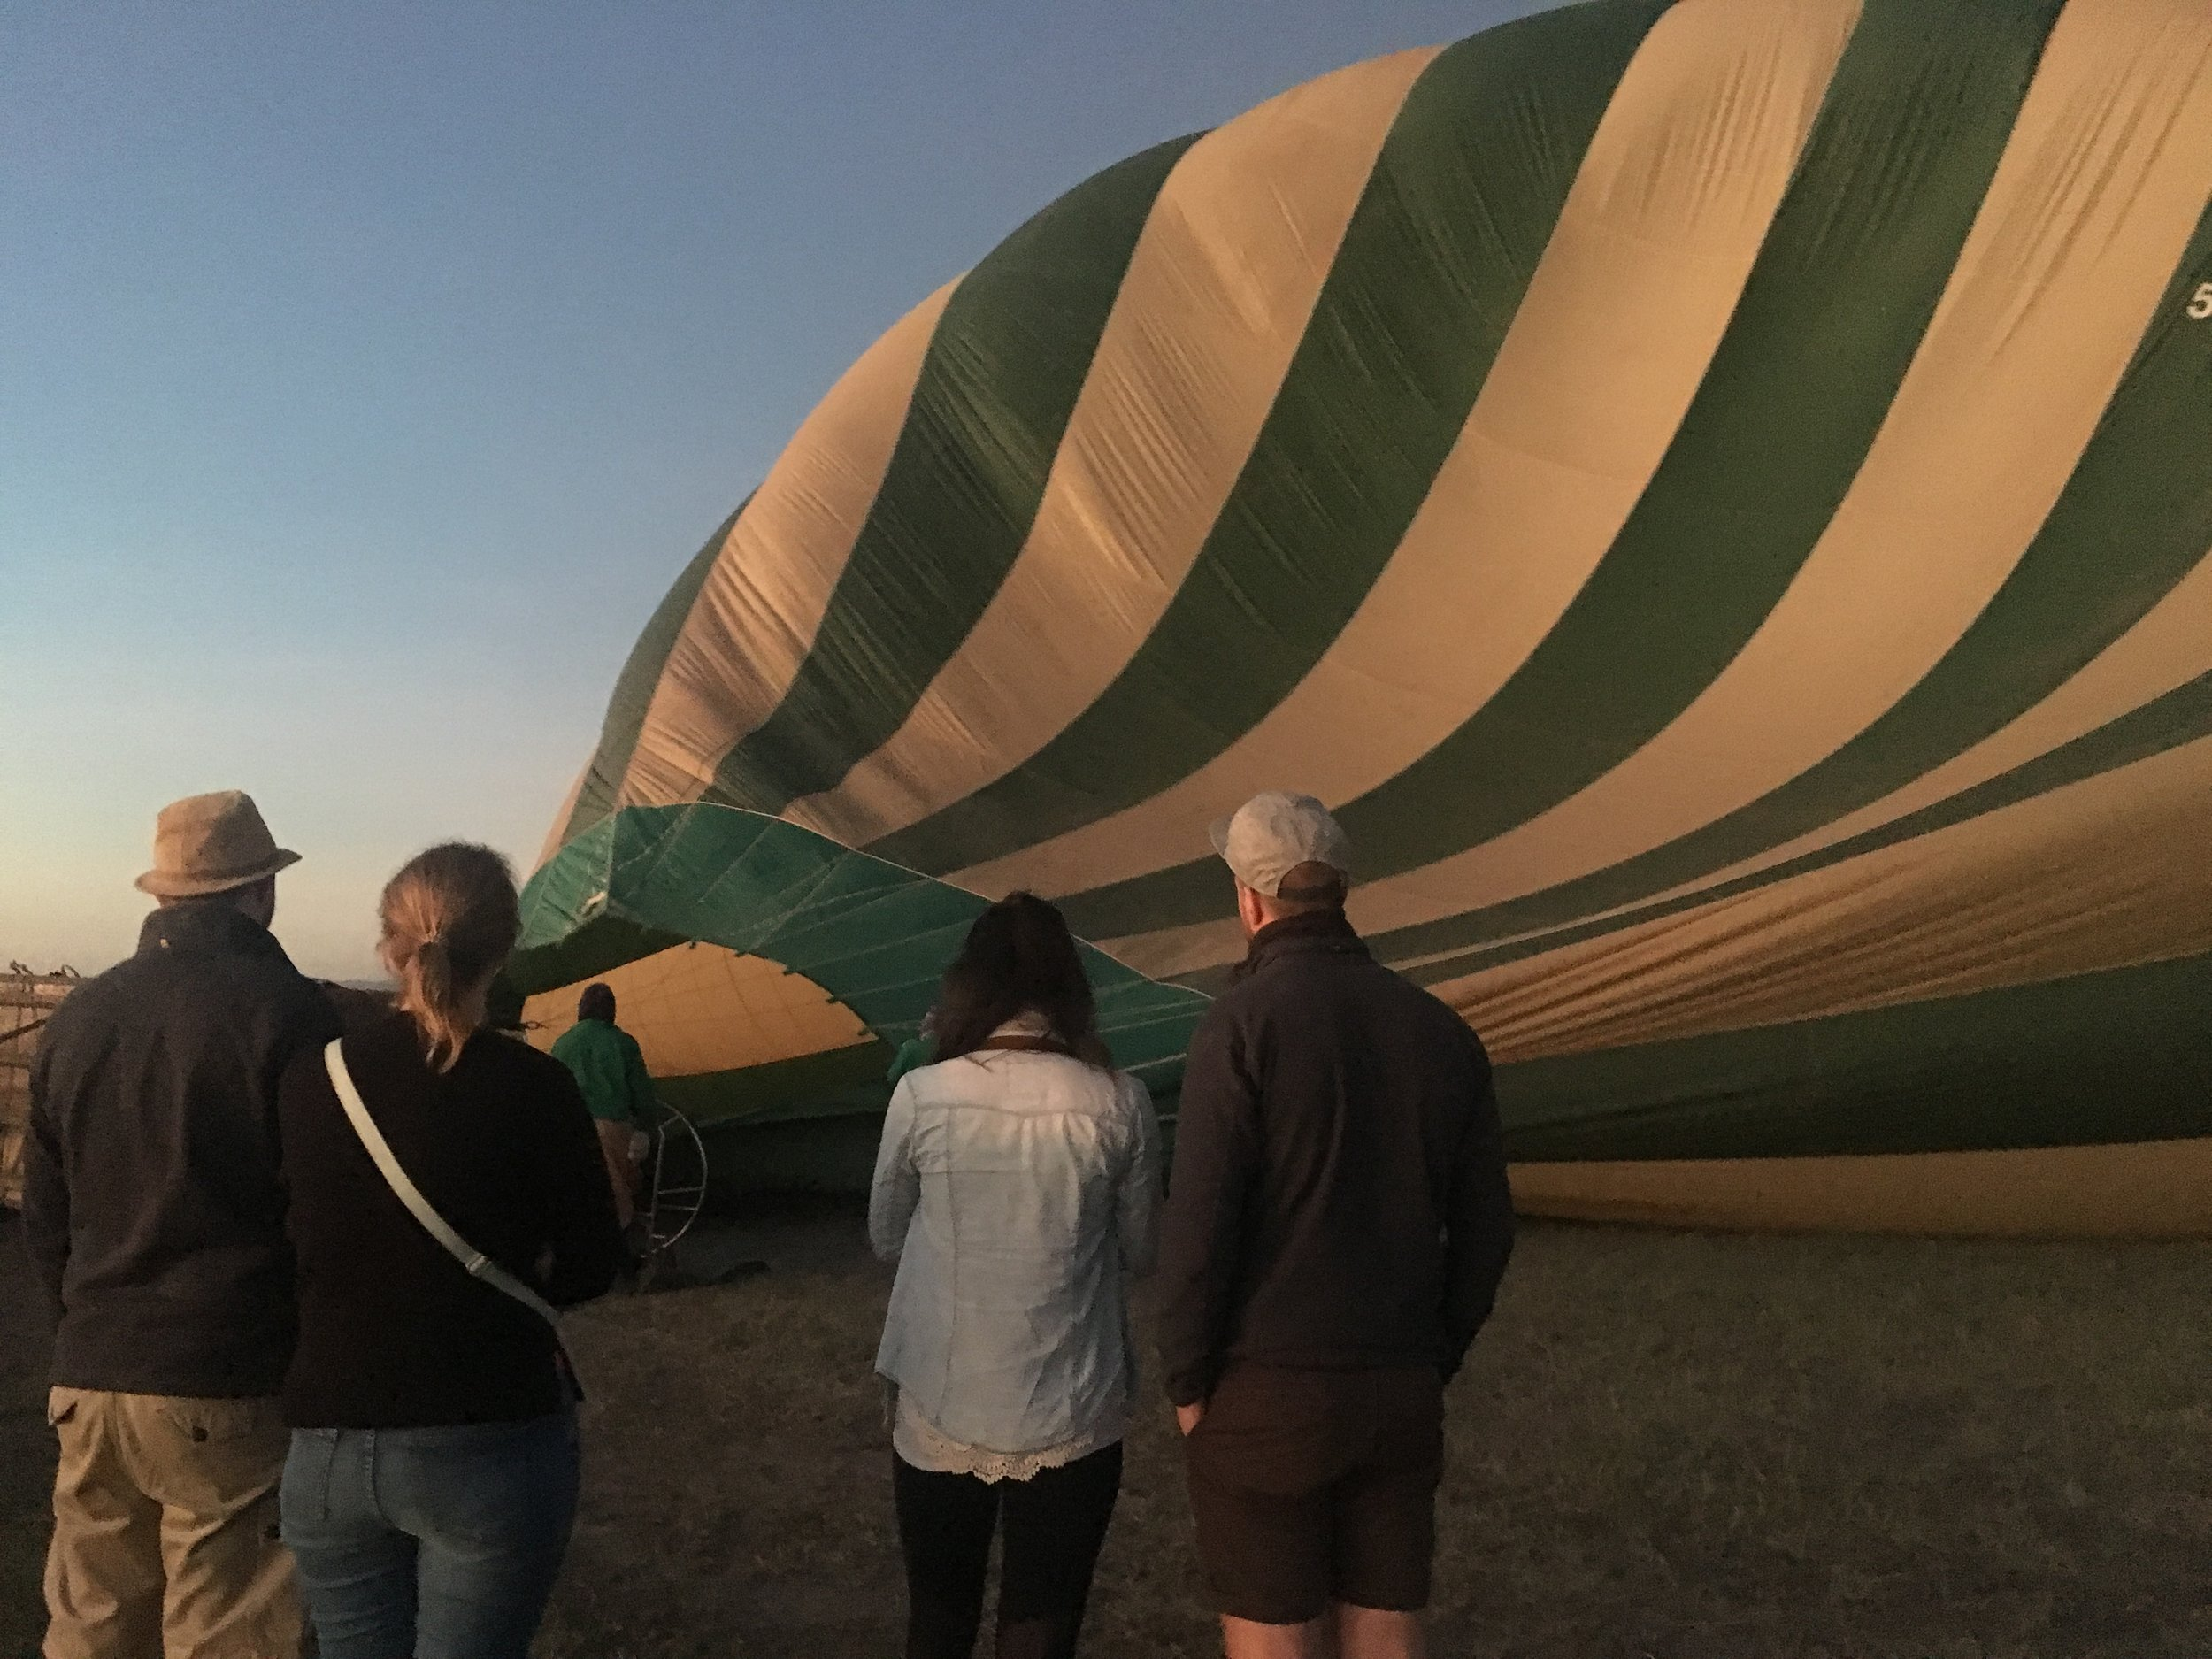 At the launch site waiting to load into the basket